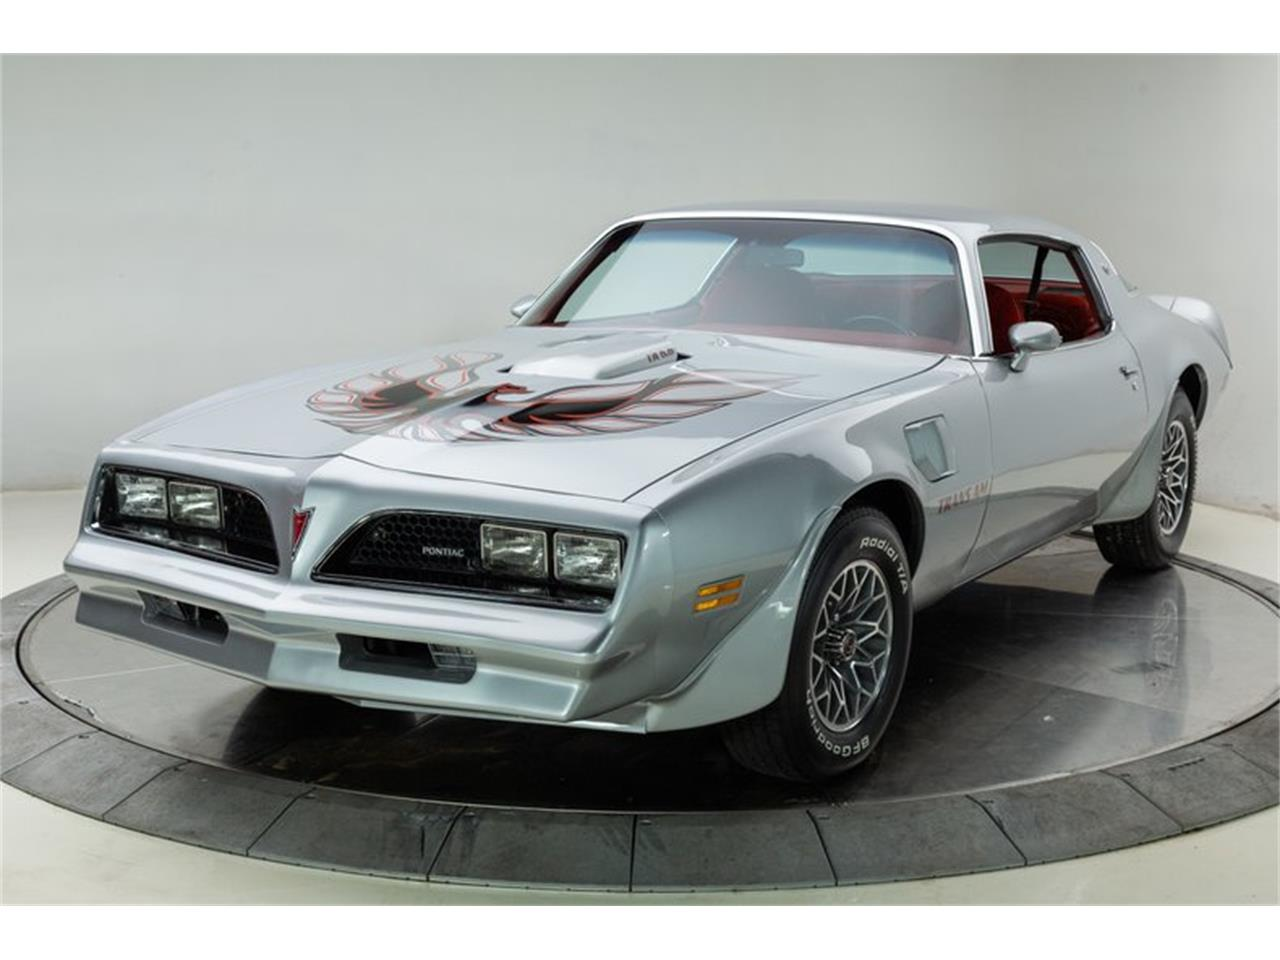 For Sale: 1977 Pontiac Firebird Trans Am in Cedar Rapids, Iowa